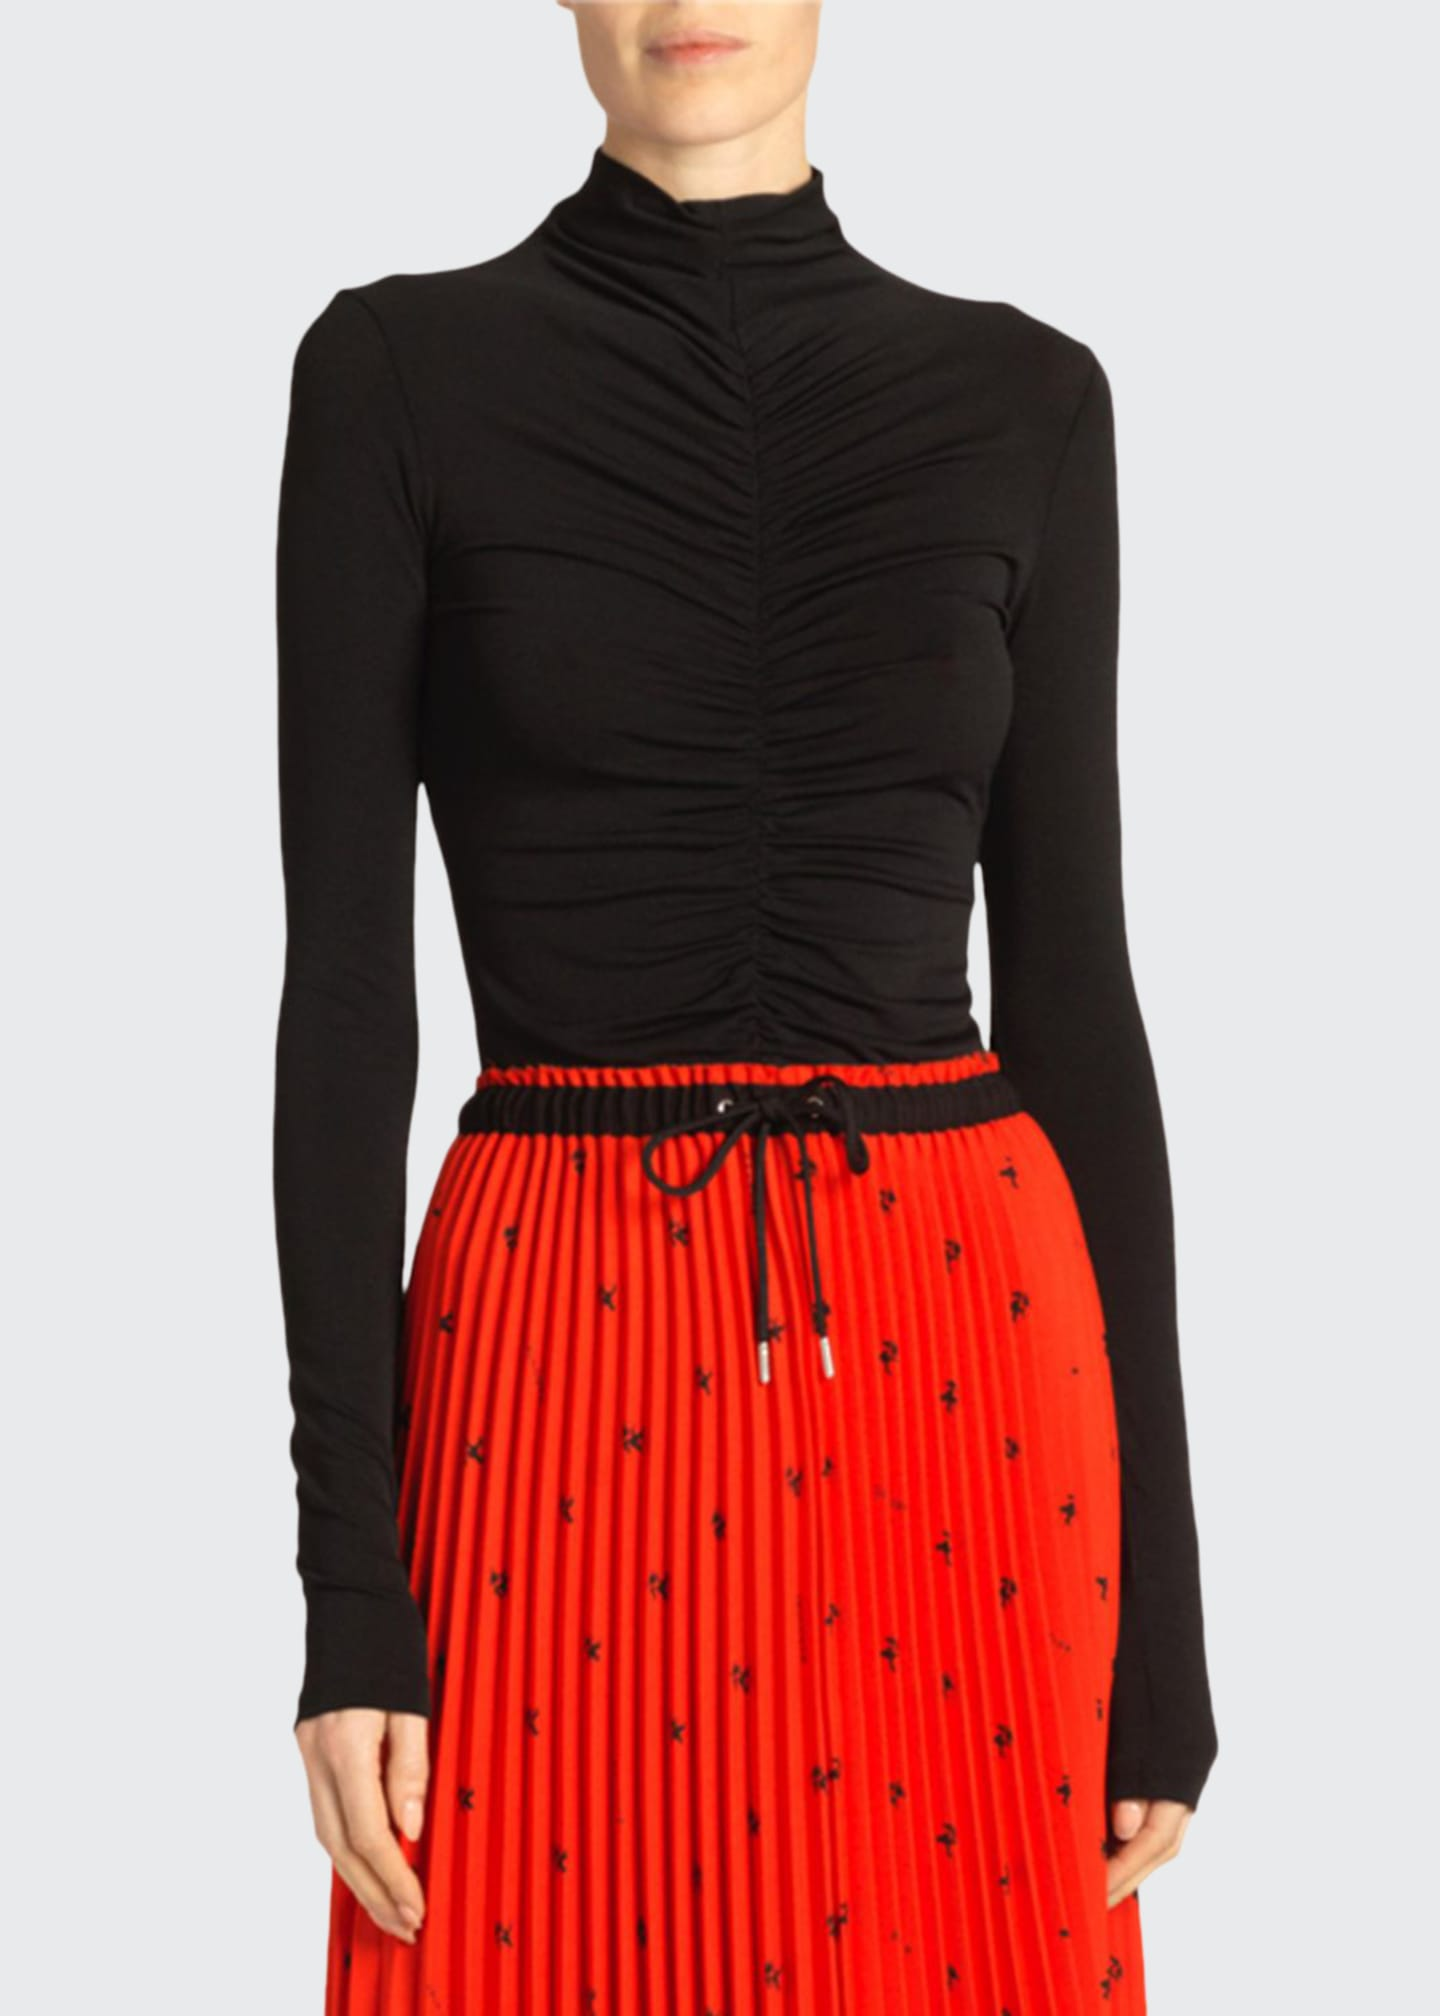 Proenza Schouler White Label Open-Back Fitted Ruched Turtleneck